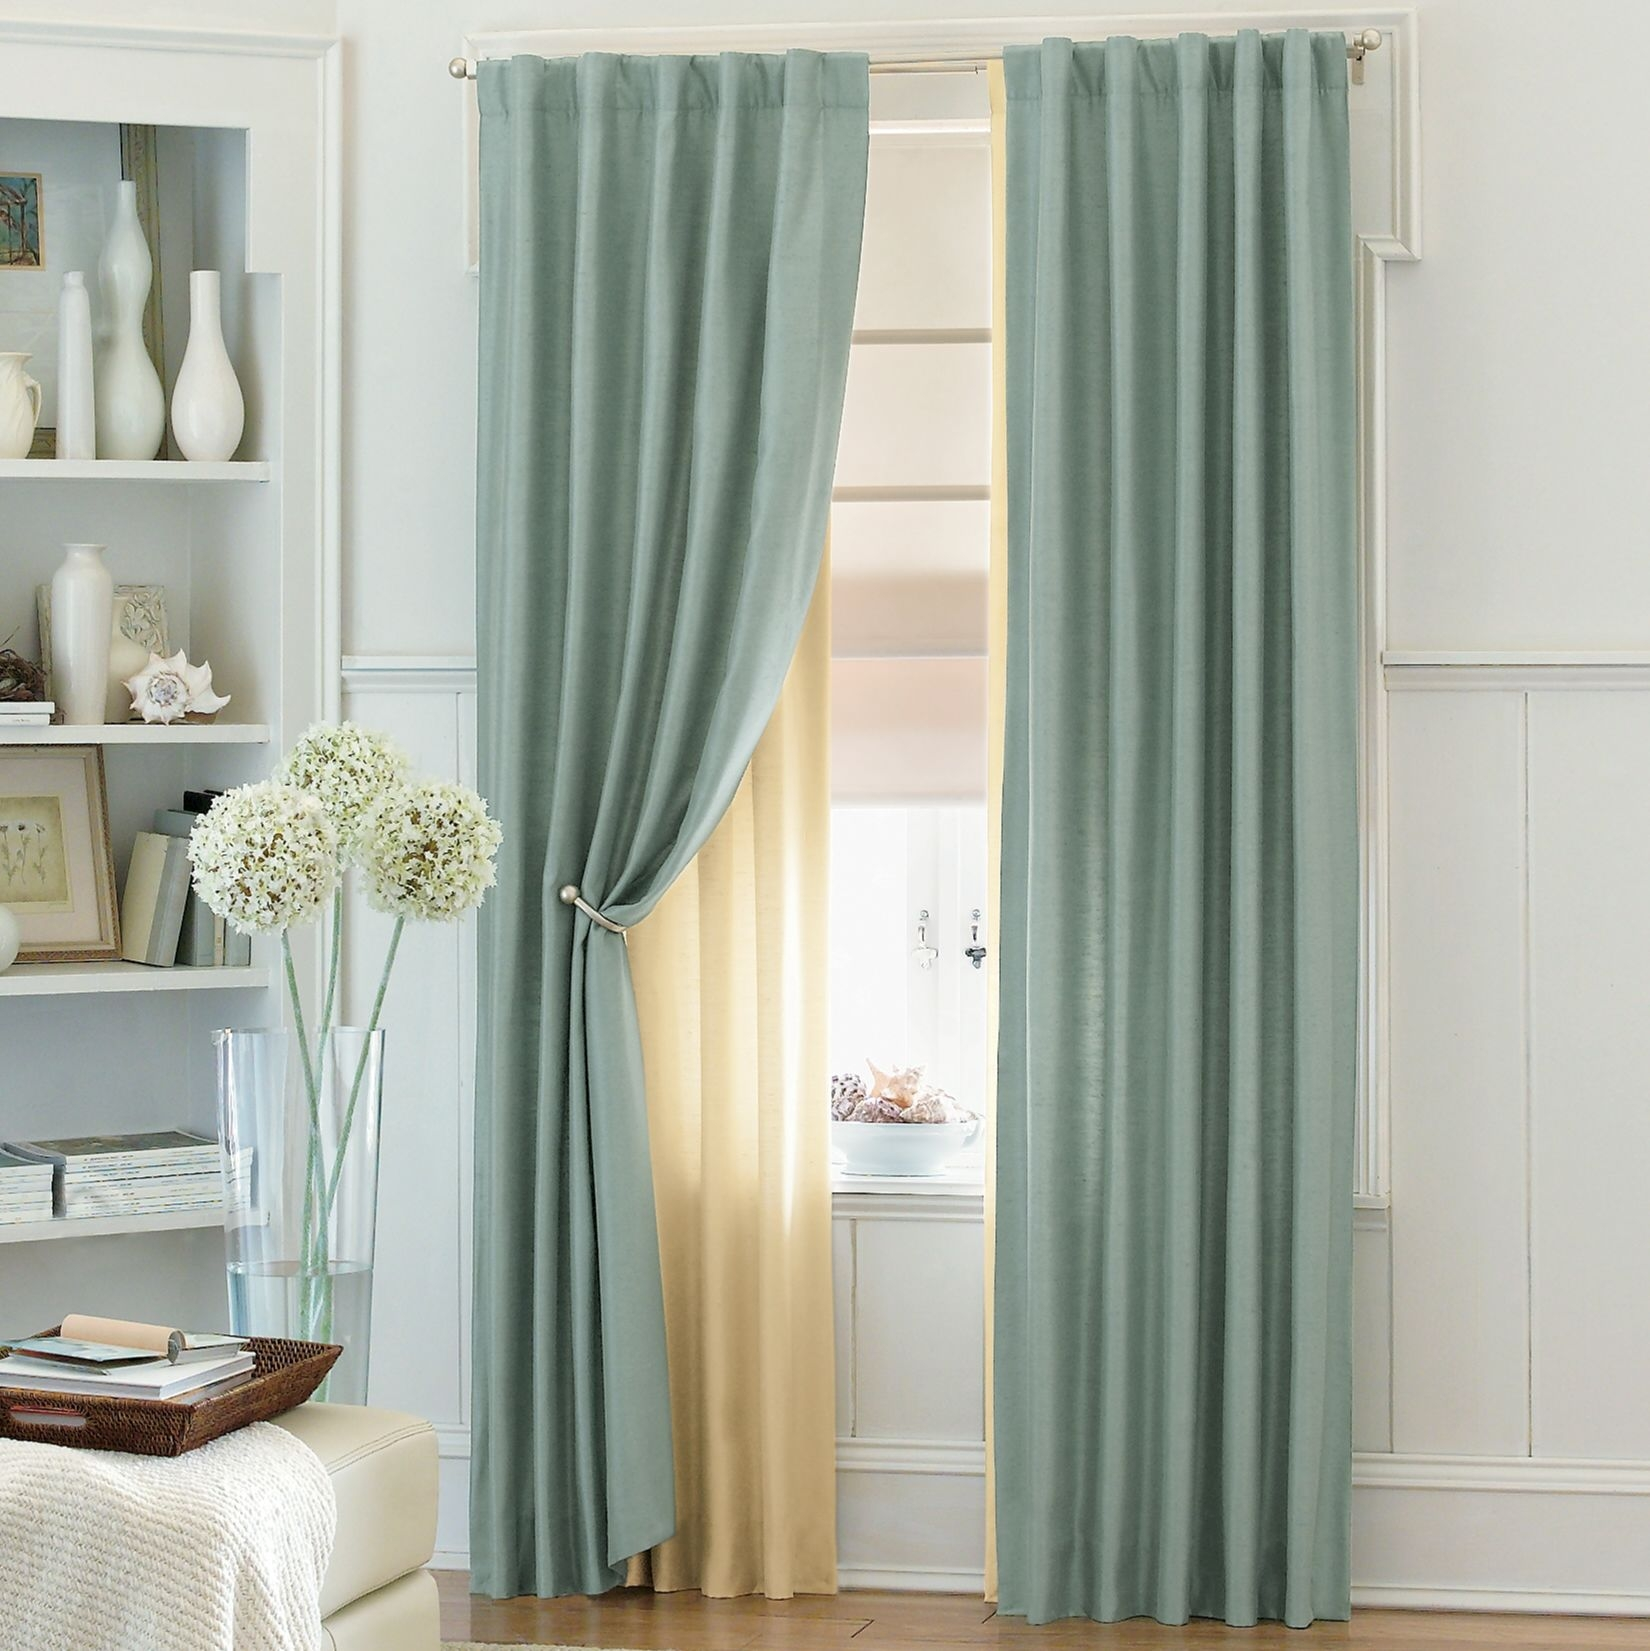 Curtains Elegant Window Curtains Inspiration Awe Windows Curtains Pertaining To Curtains Windows (View 15 of 25)